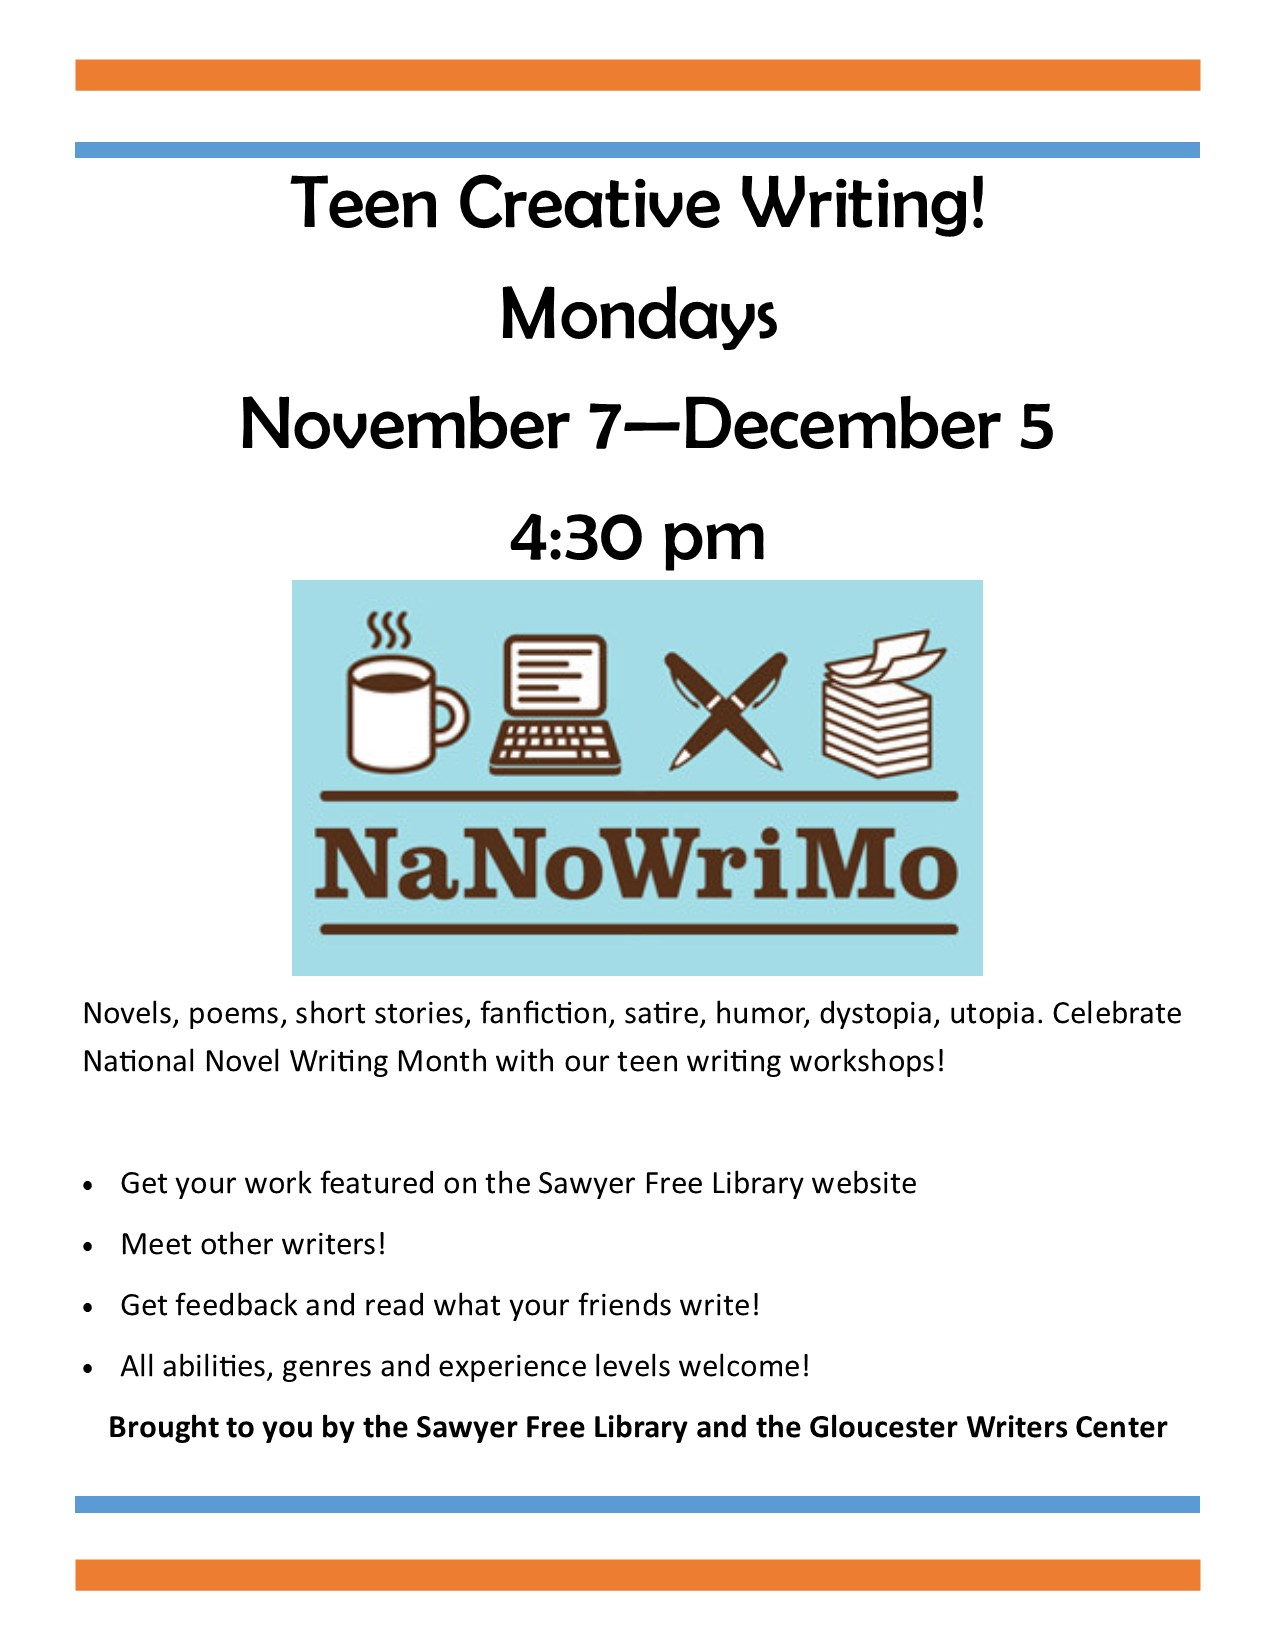 Teen Creative Writing At The Sawyer Free Library